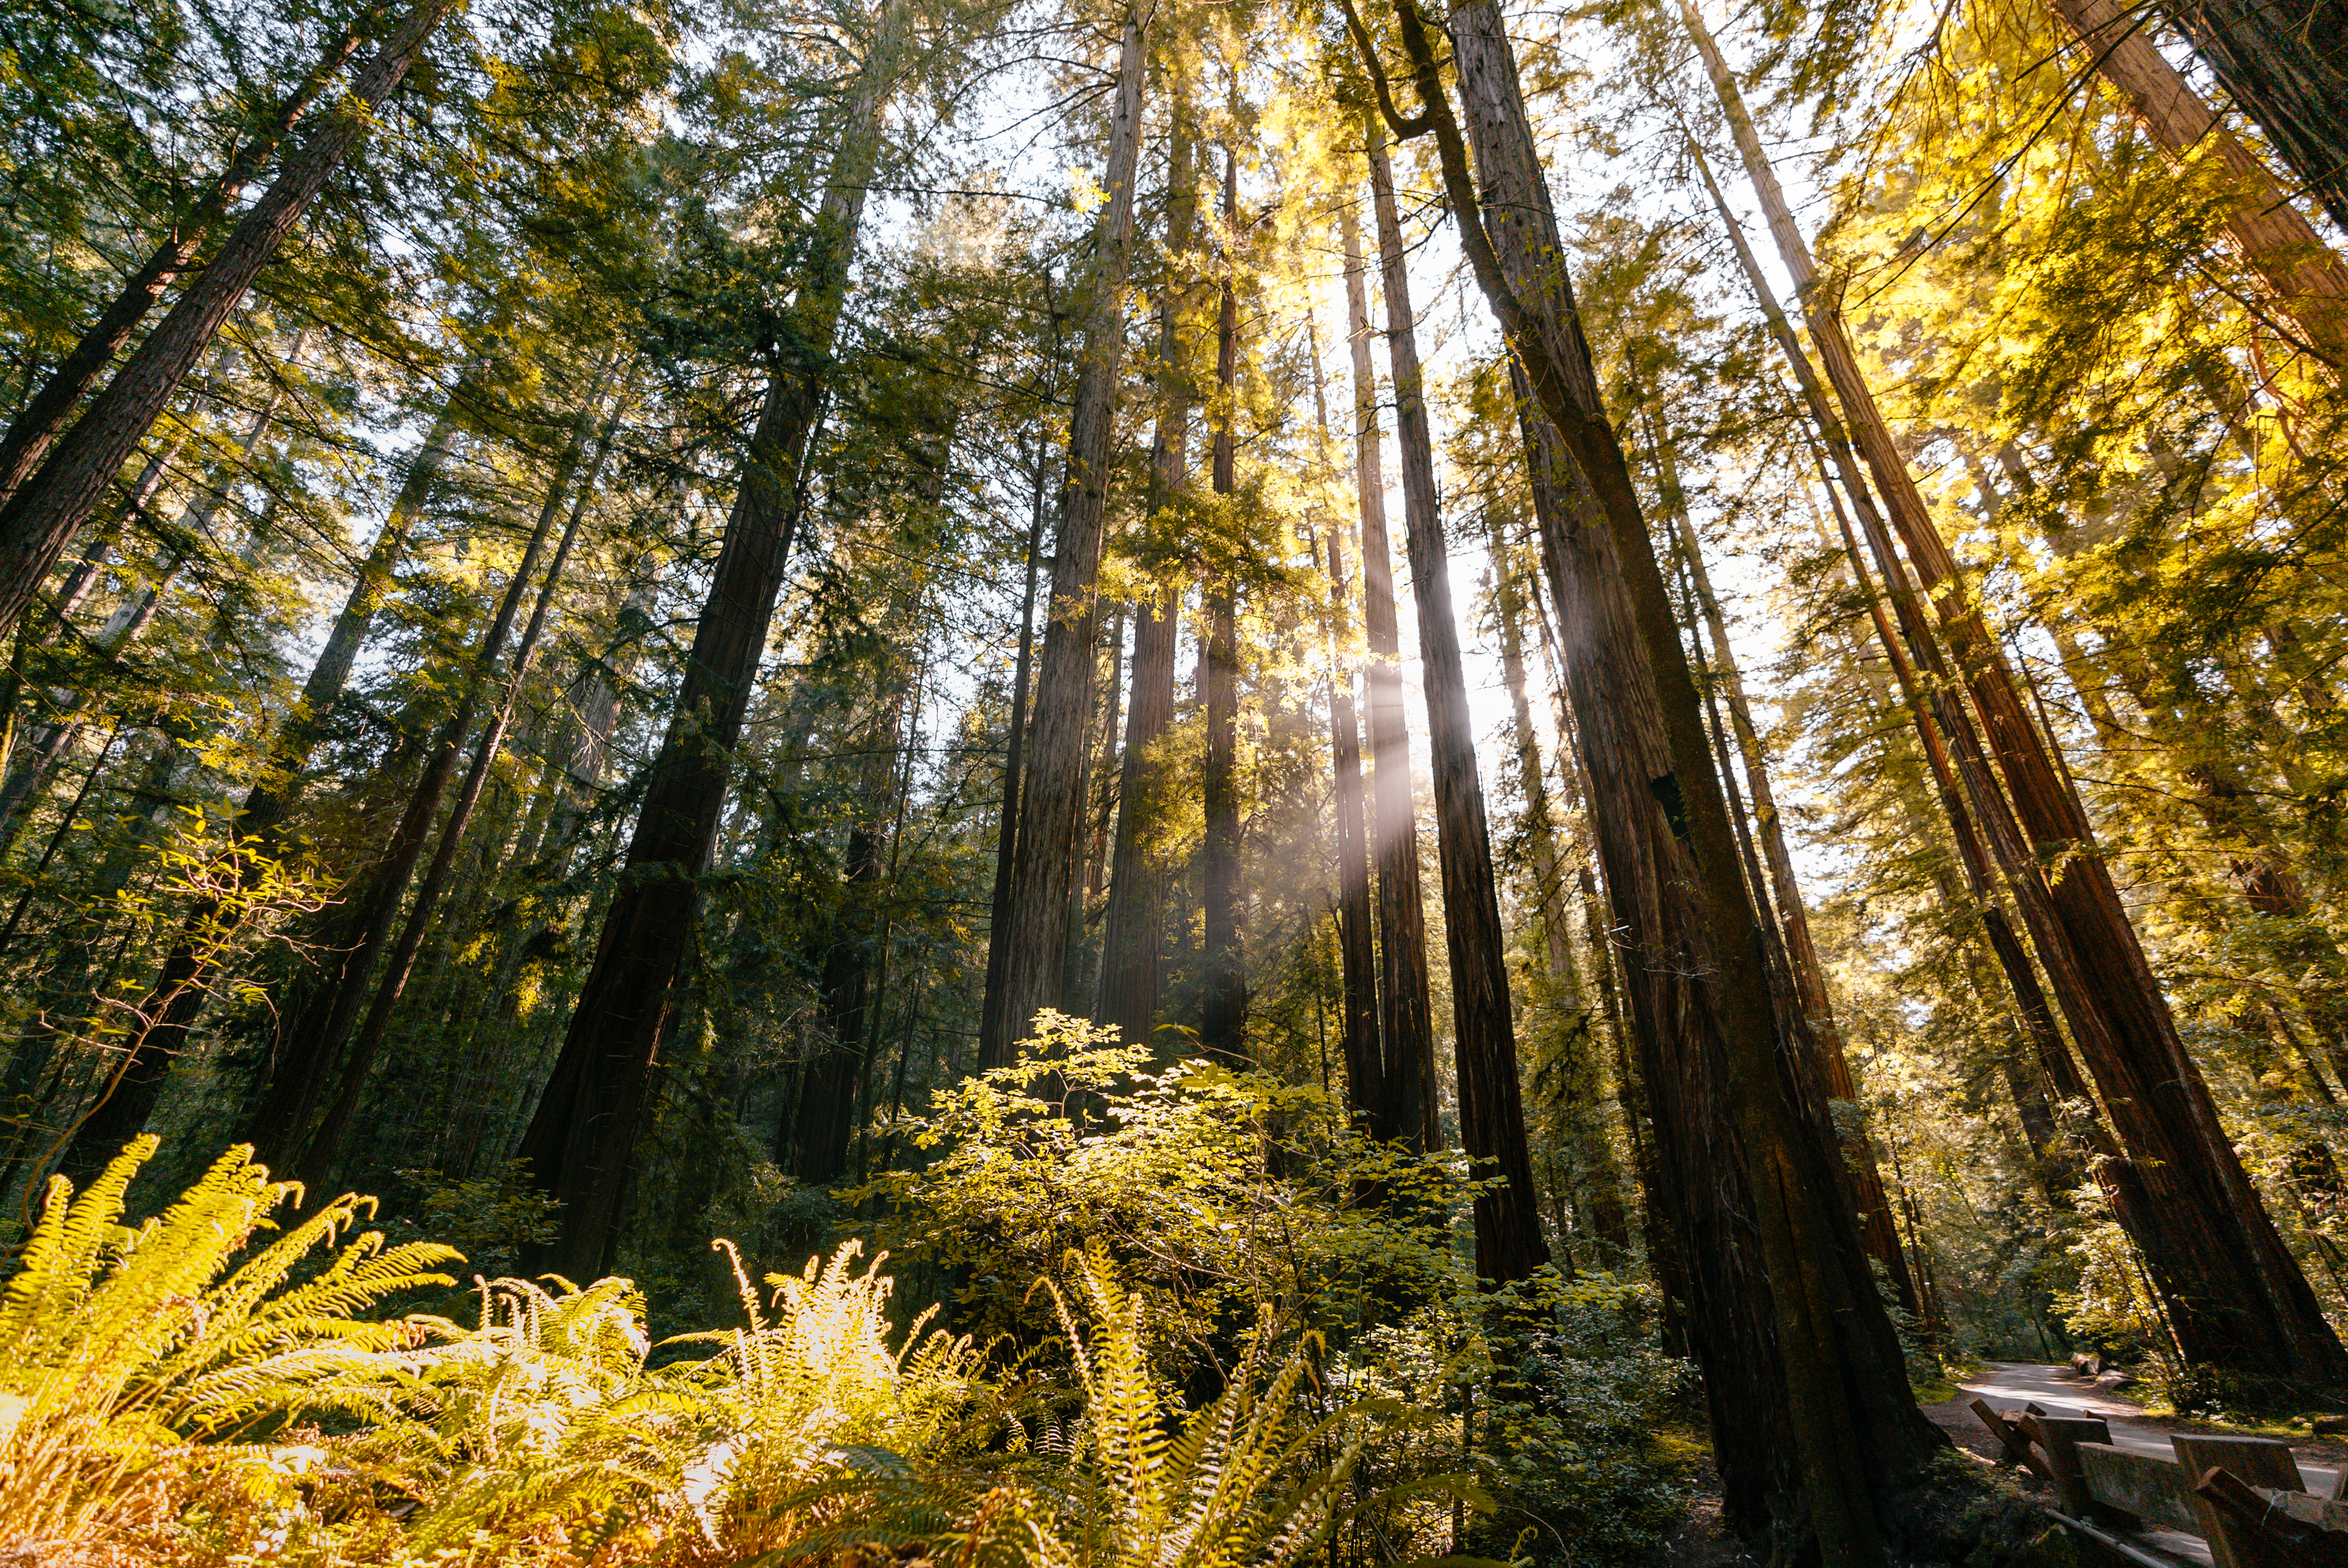 Go hiking in Armstrong Redwoods State Natural Reserve in Guerneville, Sonoma County, California